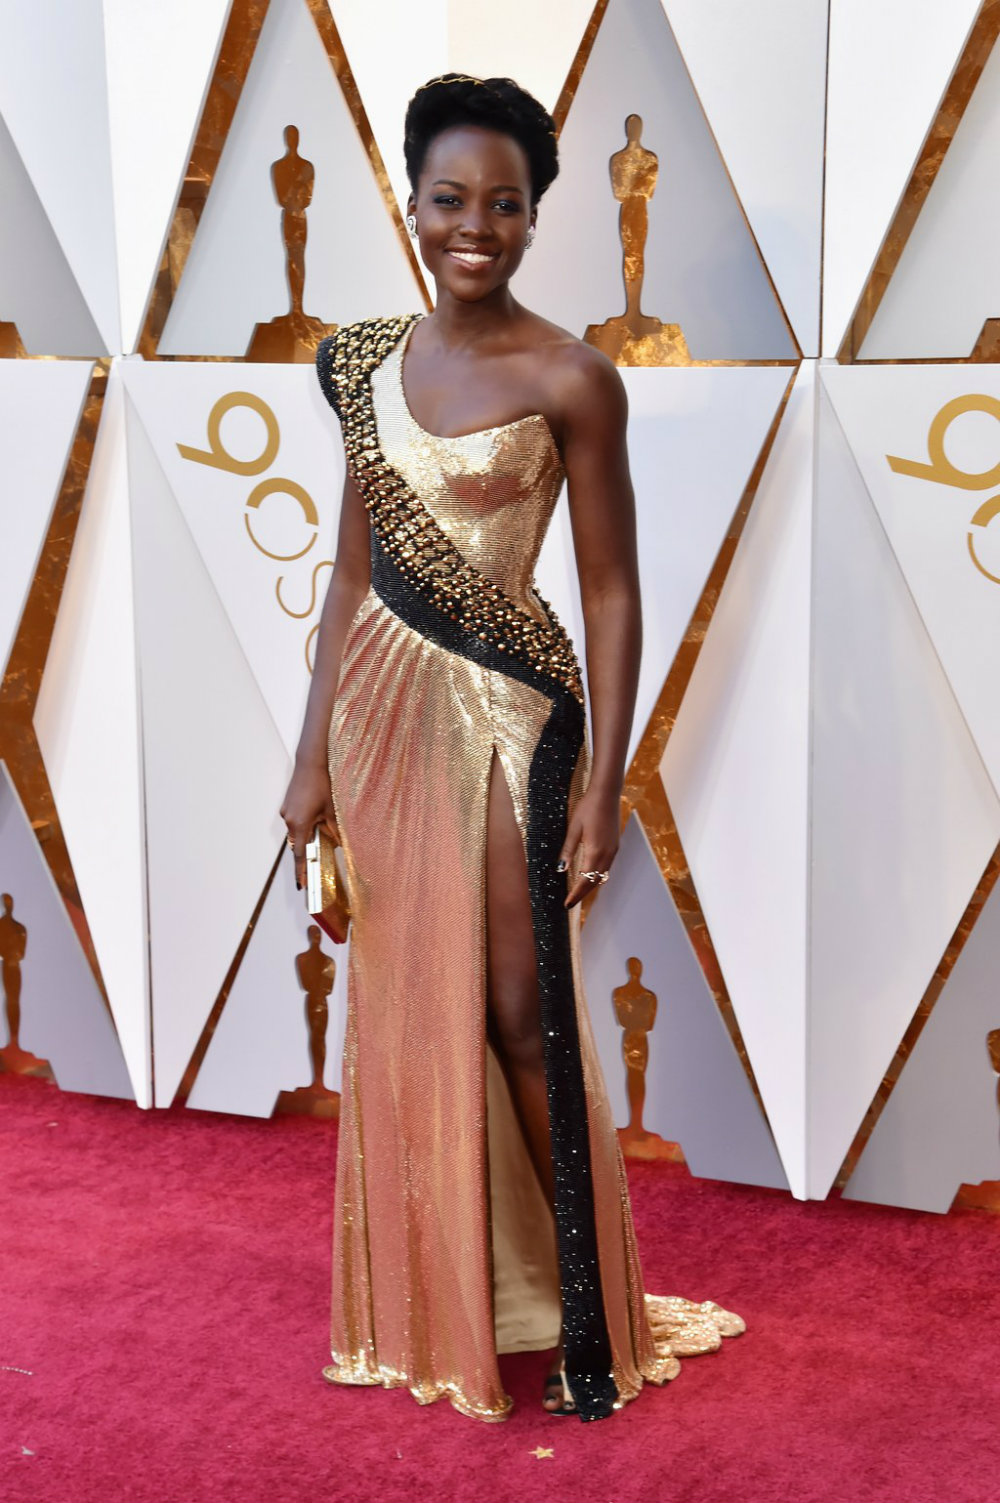 Oscars 2018 Best Dressed Celebrities on the Red Carpet 02 Oscars 2018 Oscars 2018: Best Dressed Celebrities on the Red Carpet Oscars 2018 Best Dressed Celebrities on the Red Carpet 02